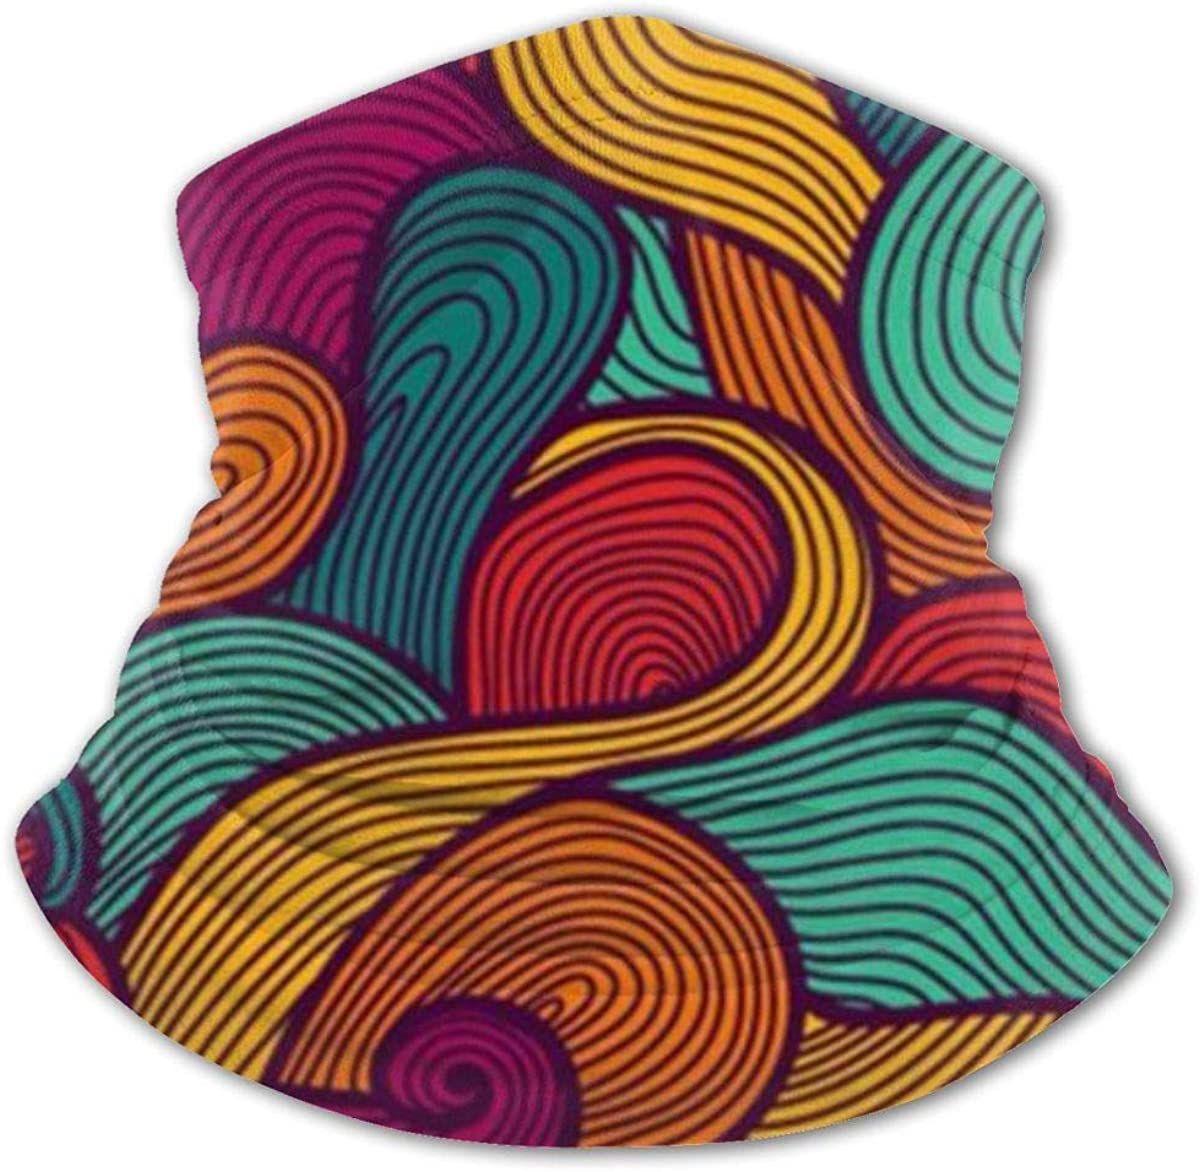 Hipster Colorful Patterned Headwear For Girls And Boys, Head Wrap, Neck Gaiter, Headband, Tenn Fishing Mask, Magic Scarf, Tube Mask, Face Bandana Mask For Camping Running Cycling